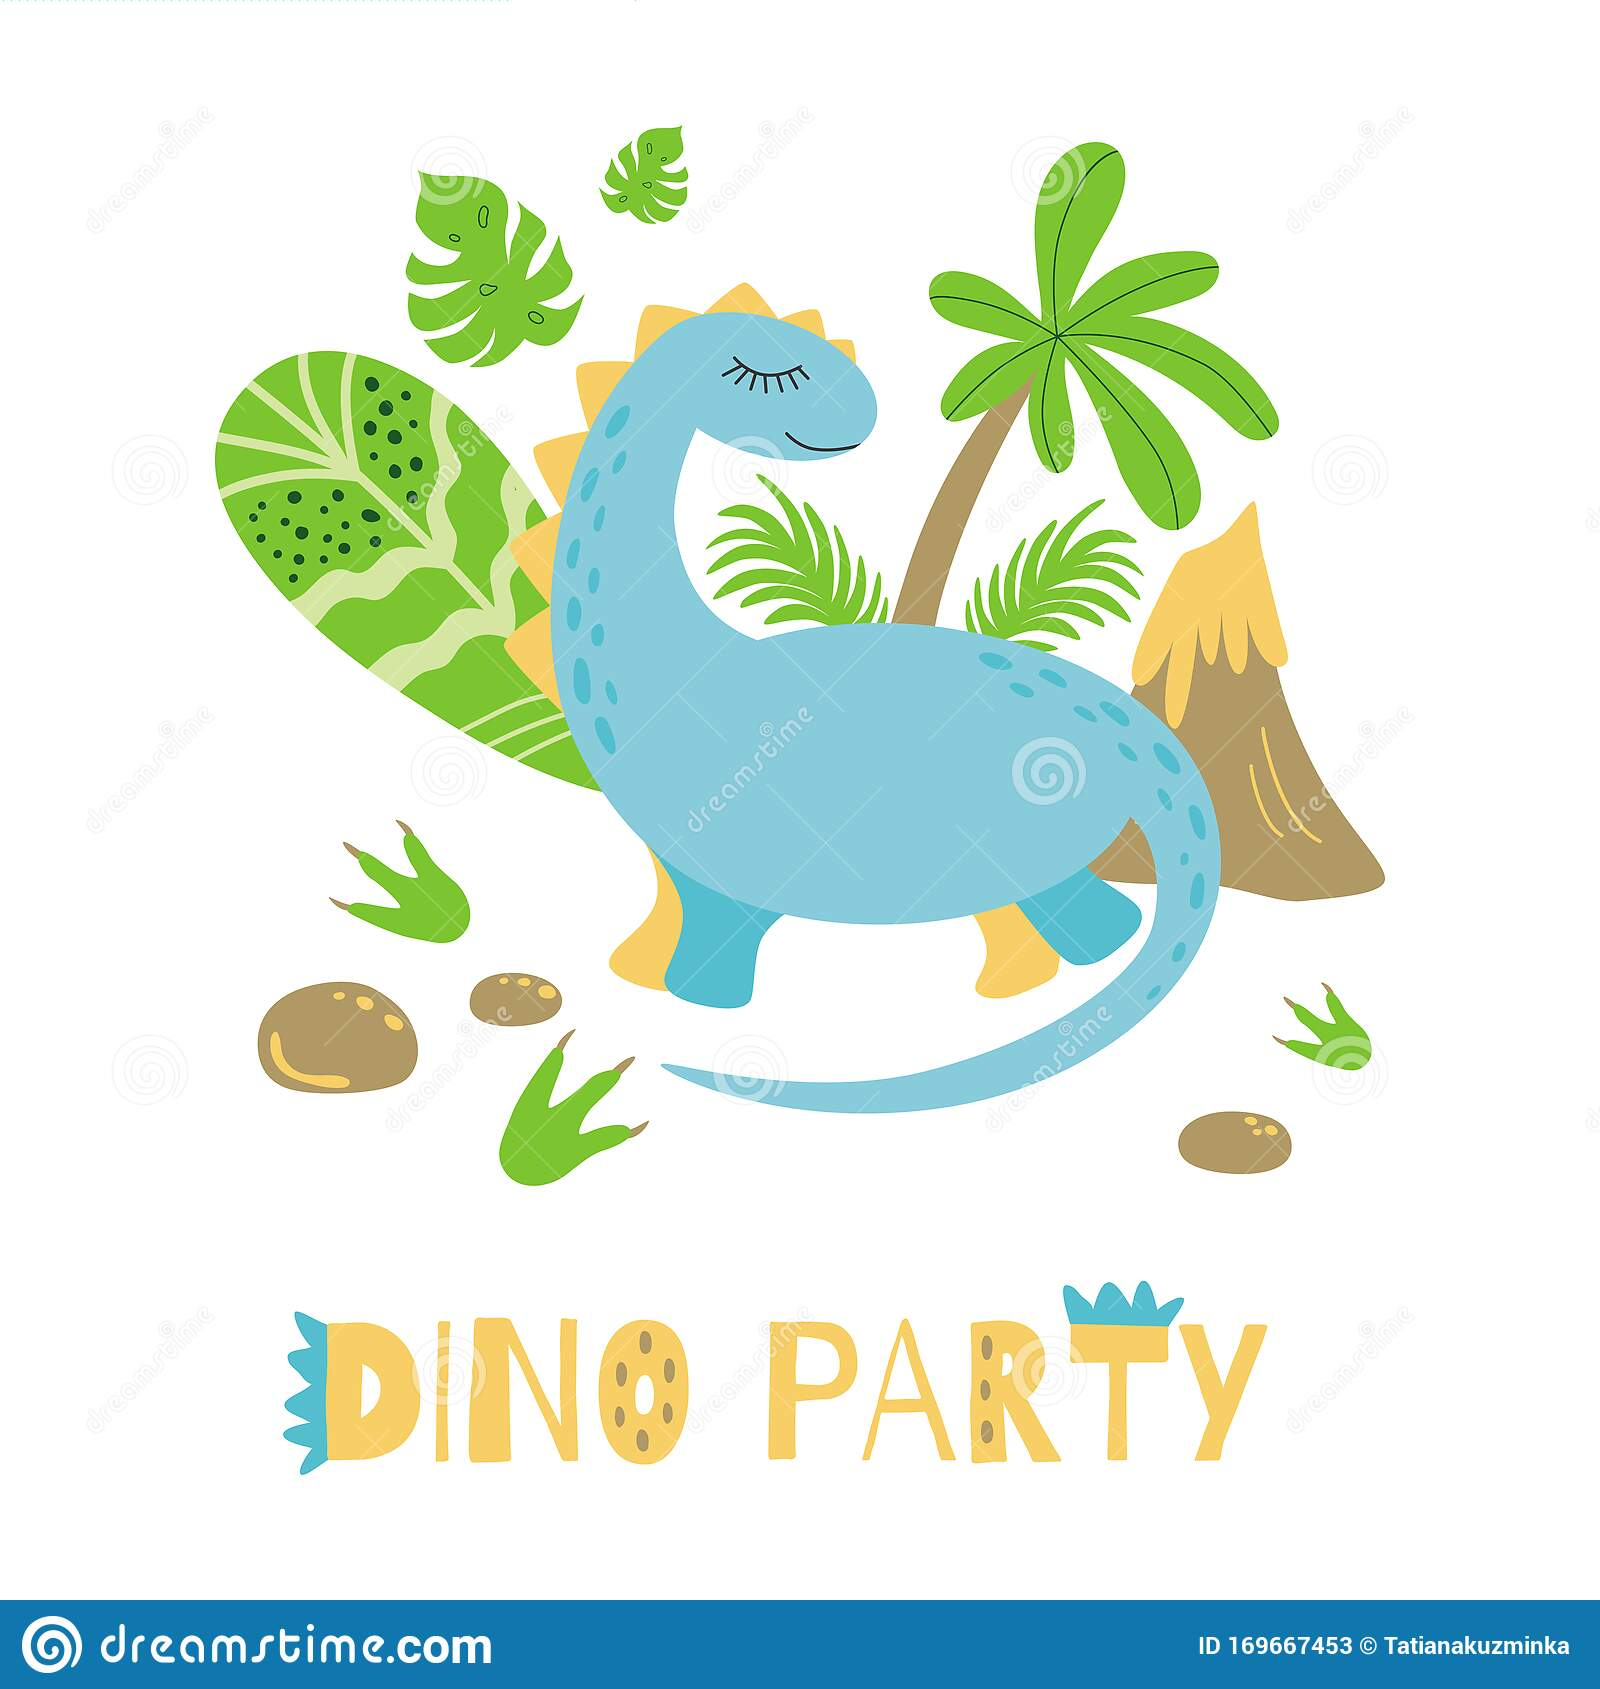 https www dreamstime com dino party invitation card poster cute dinosaur bright colors vector template text cartoon kids style happy birthday image169667453